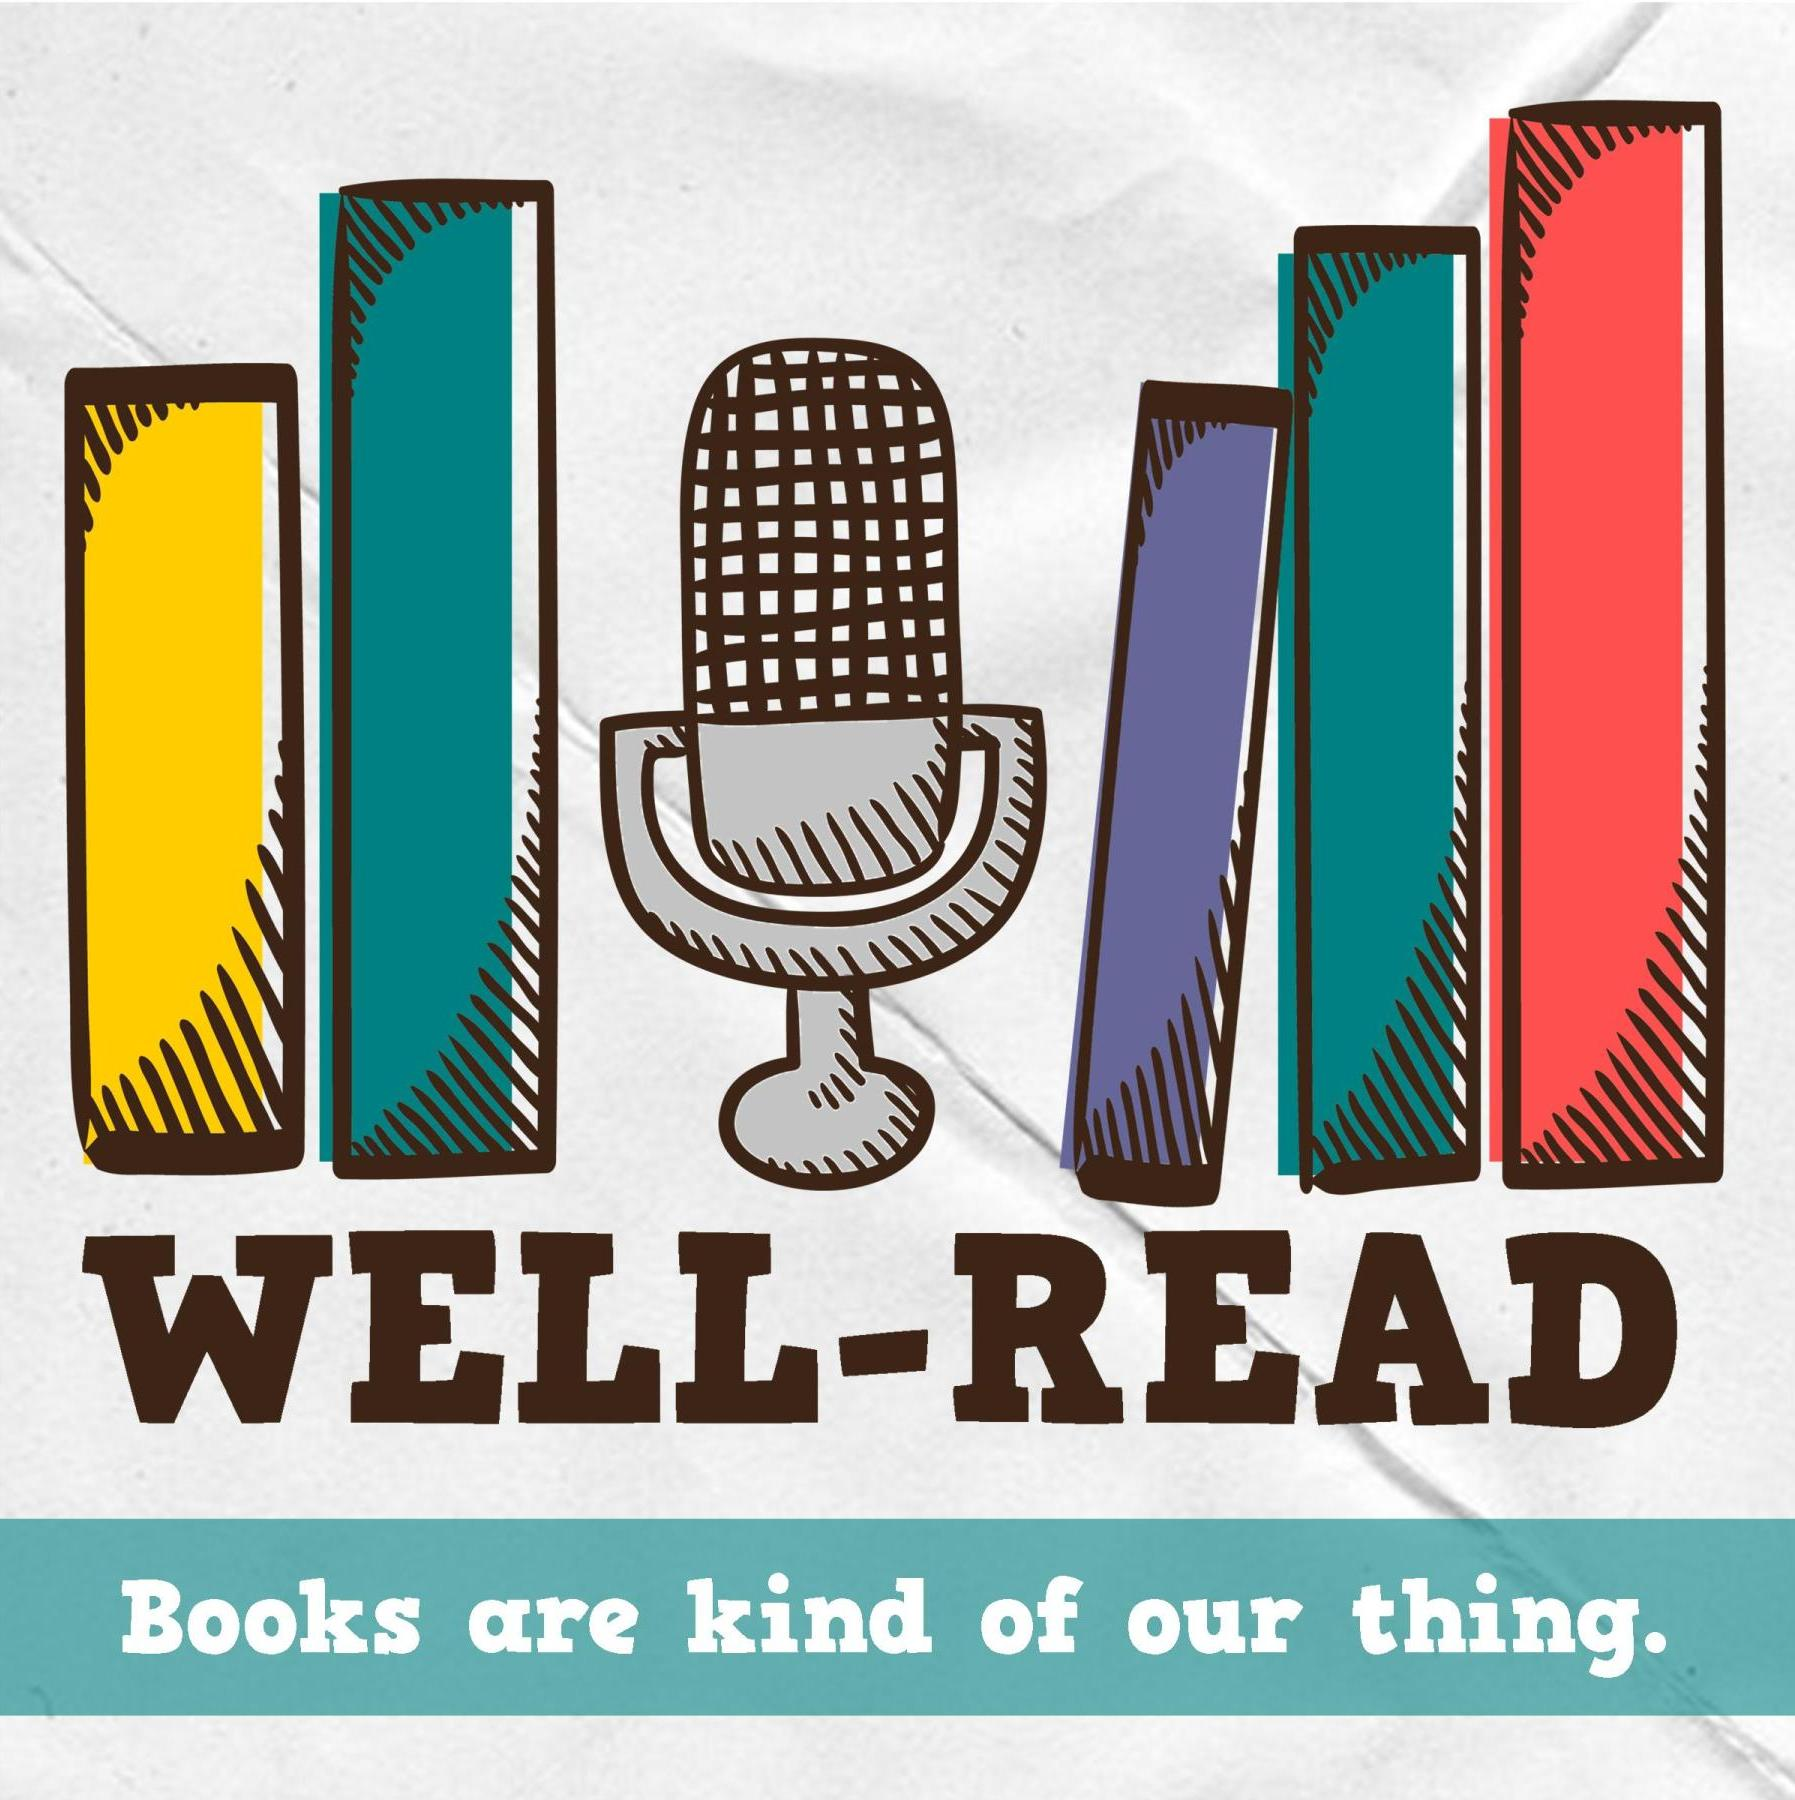 Well-Read Episode #53 - Books About Books